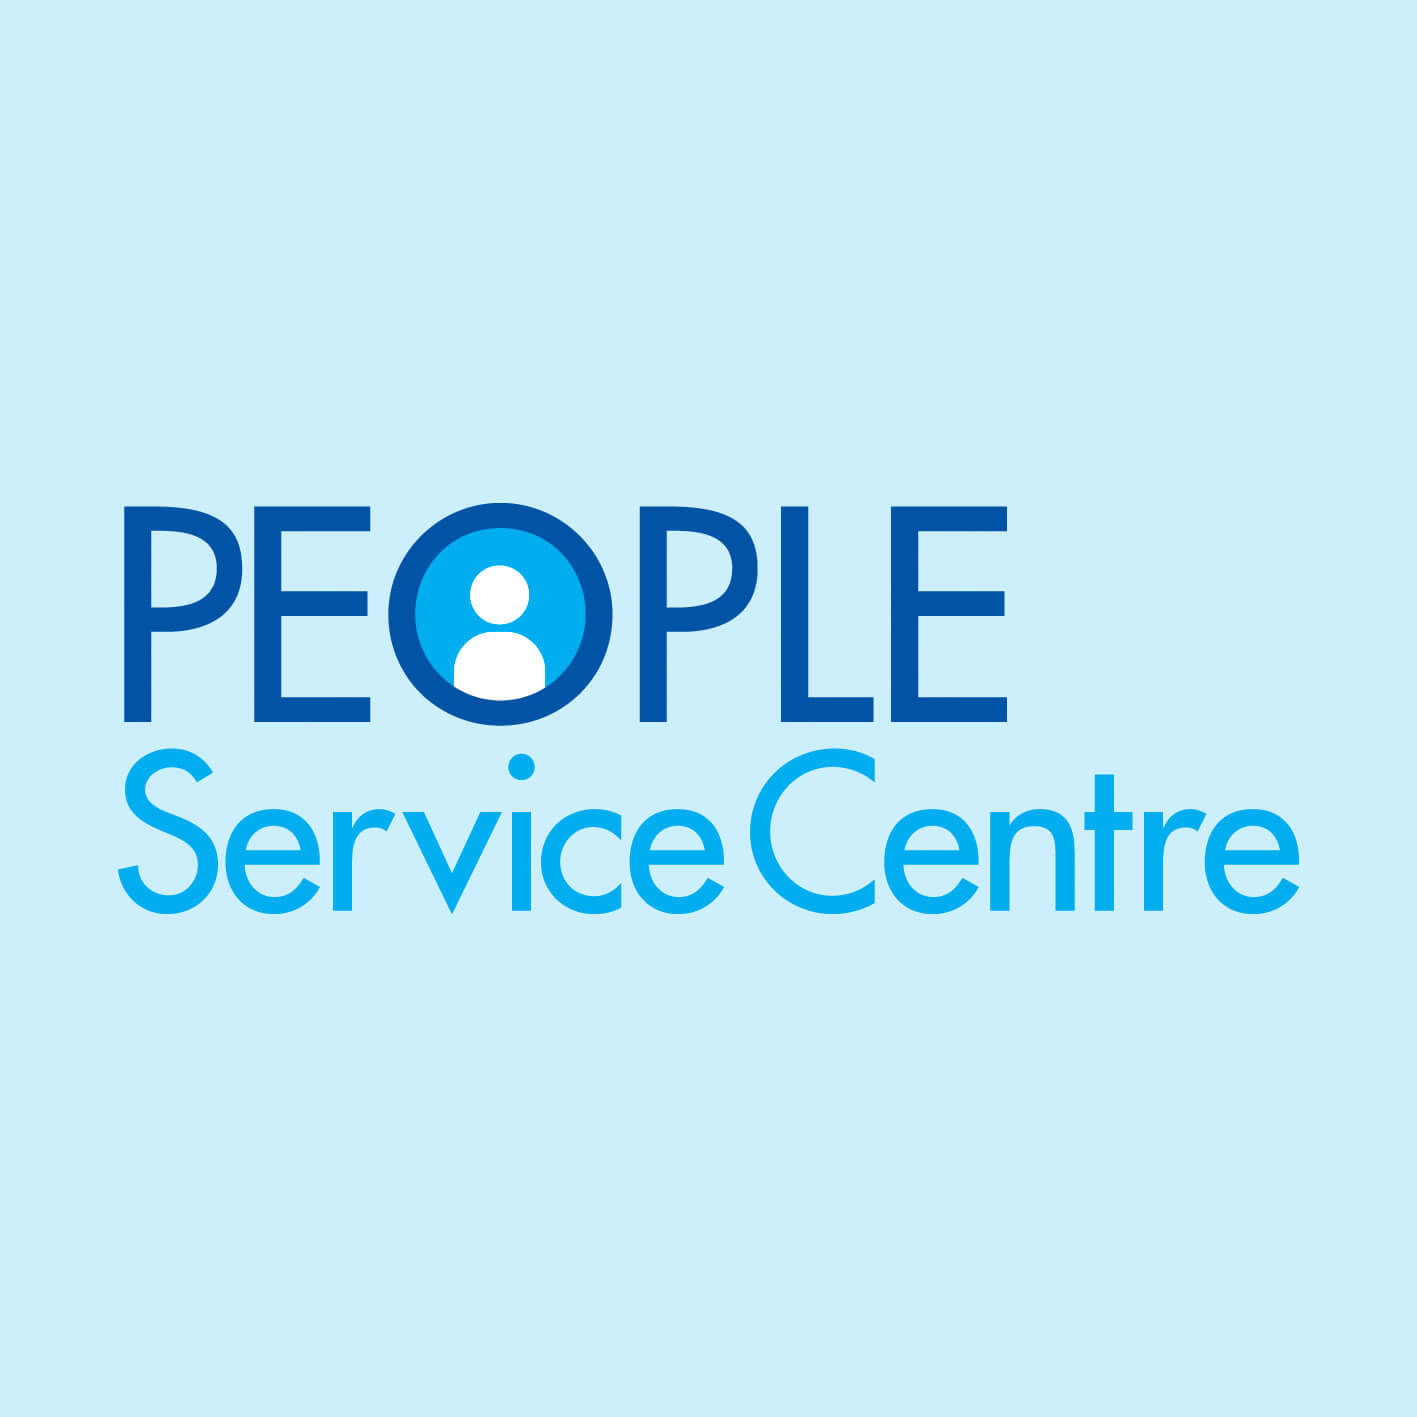 Delphi People Service Centre.jpg